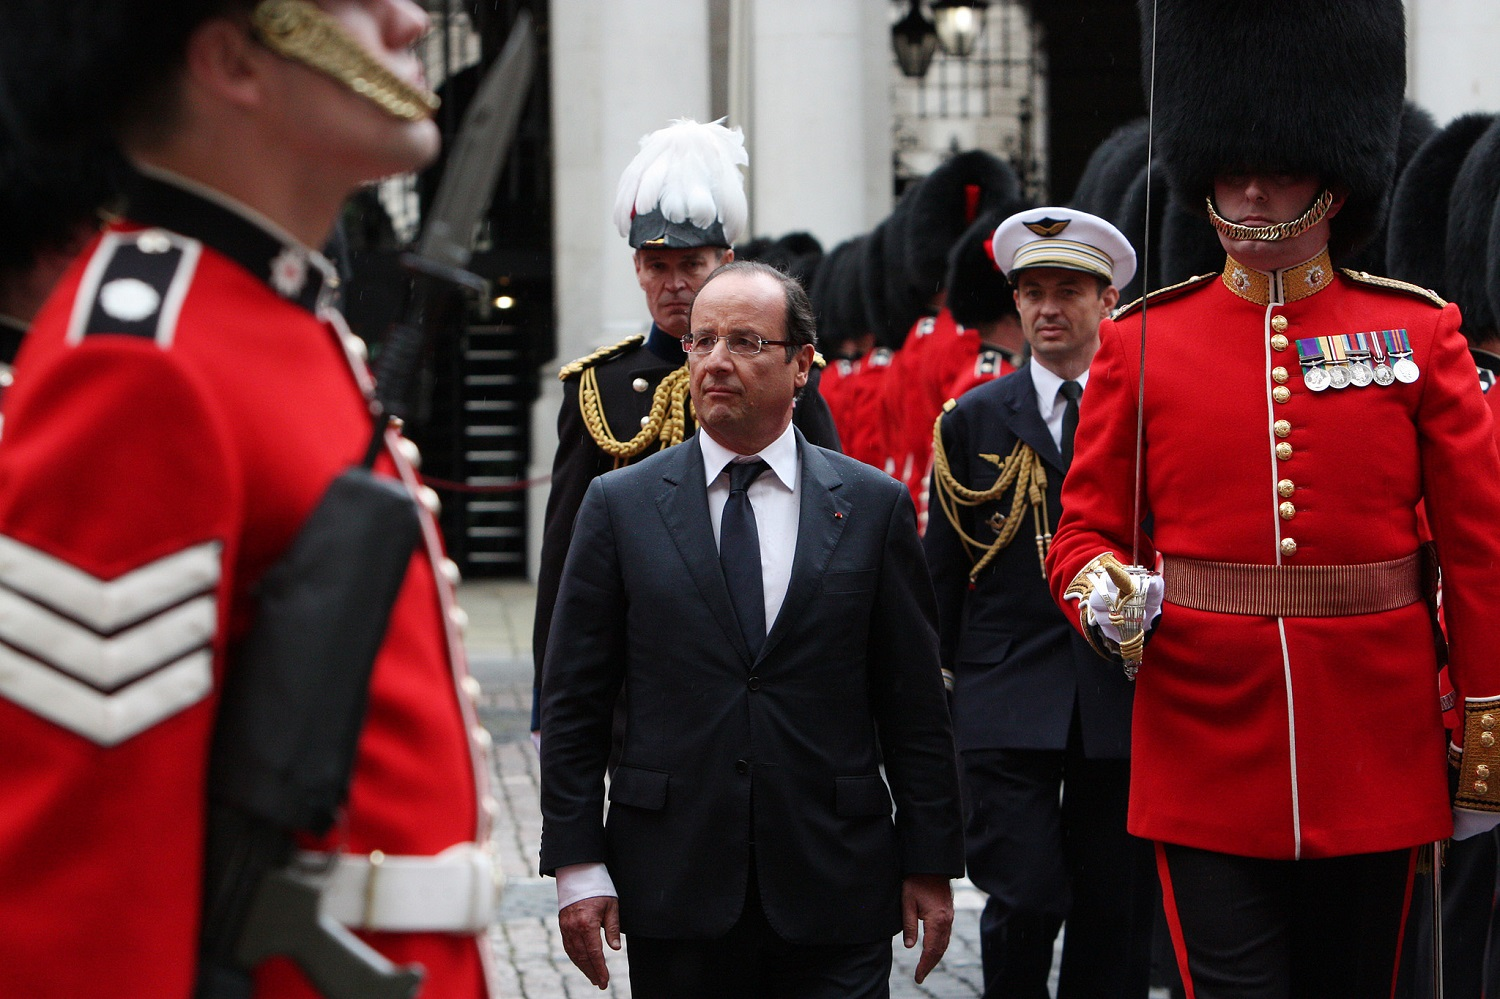 President Hollande in the UK